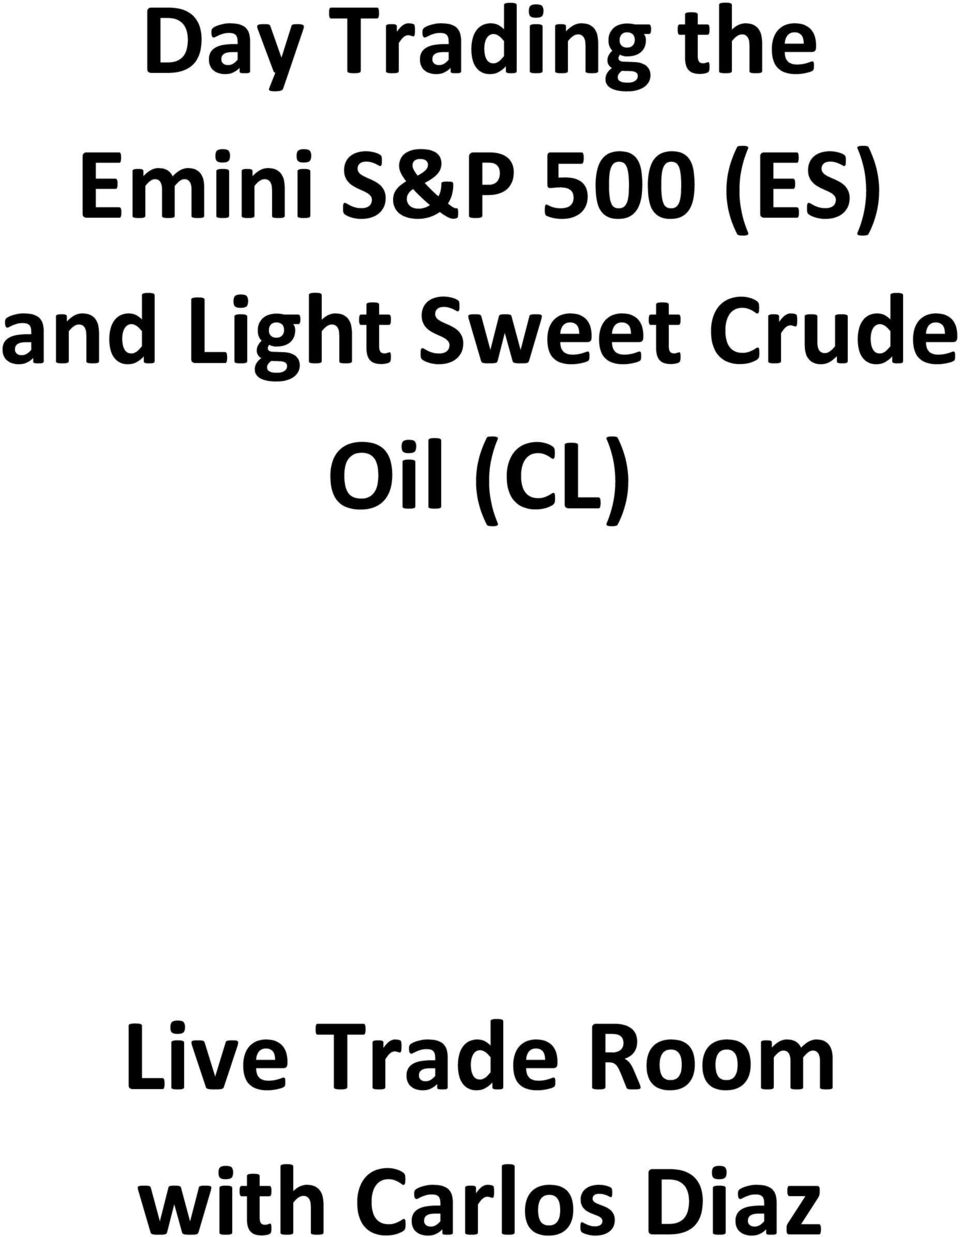 Sweet Crude Oil (CL)